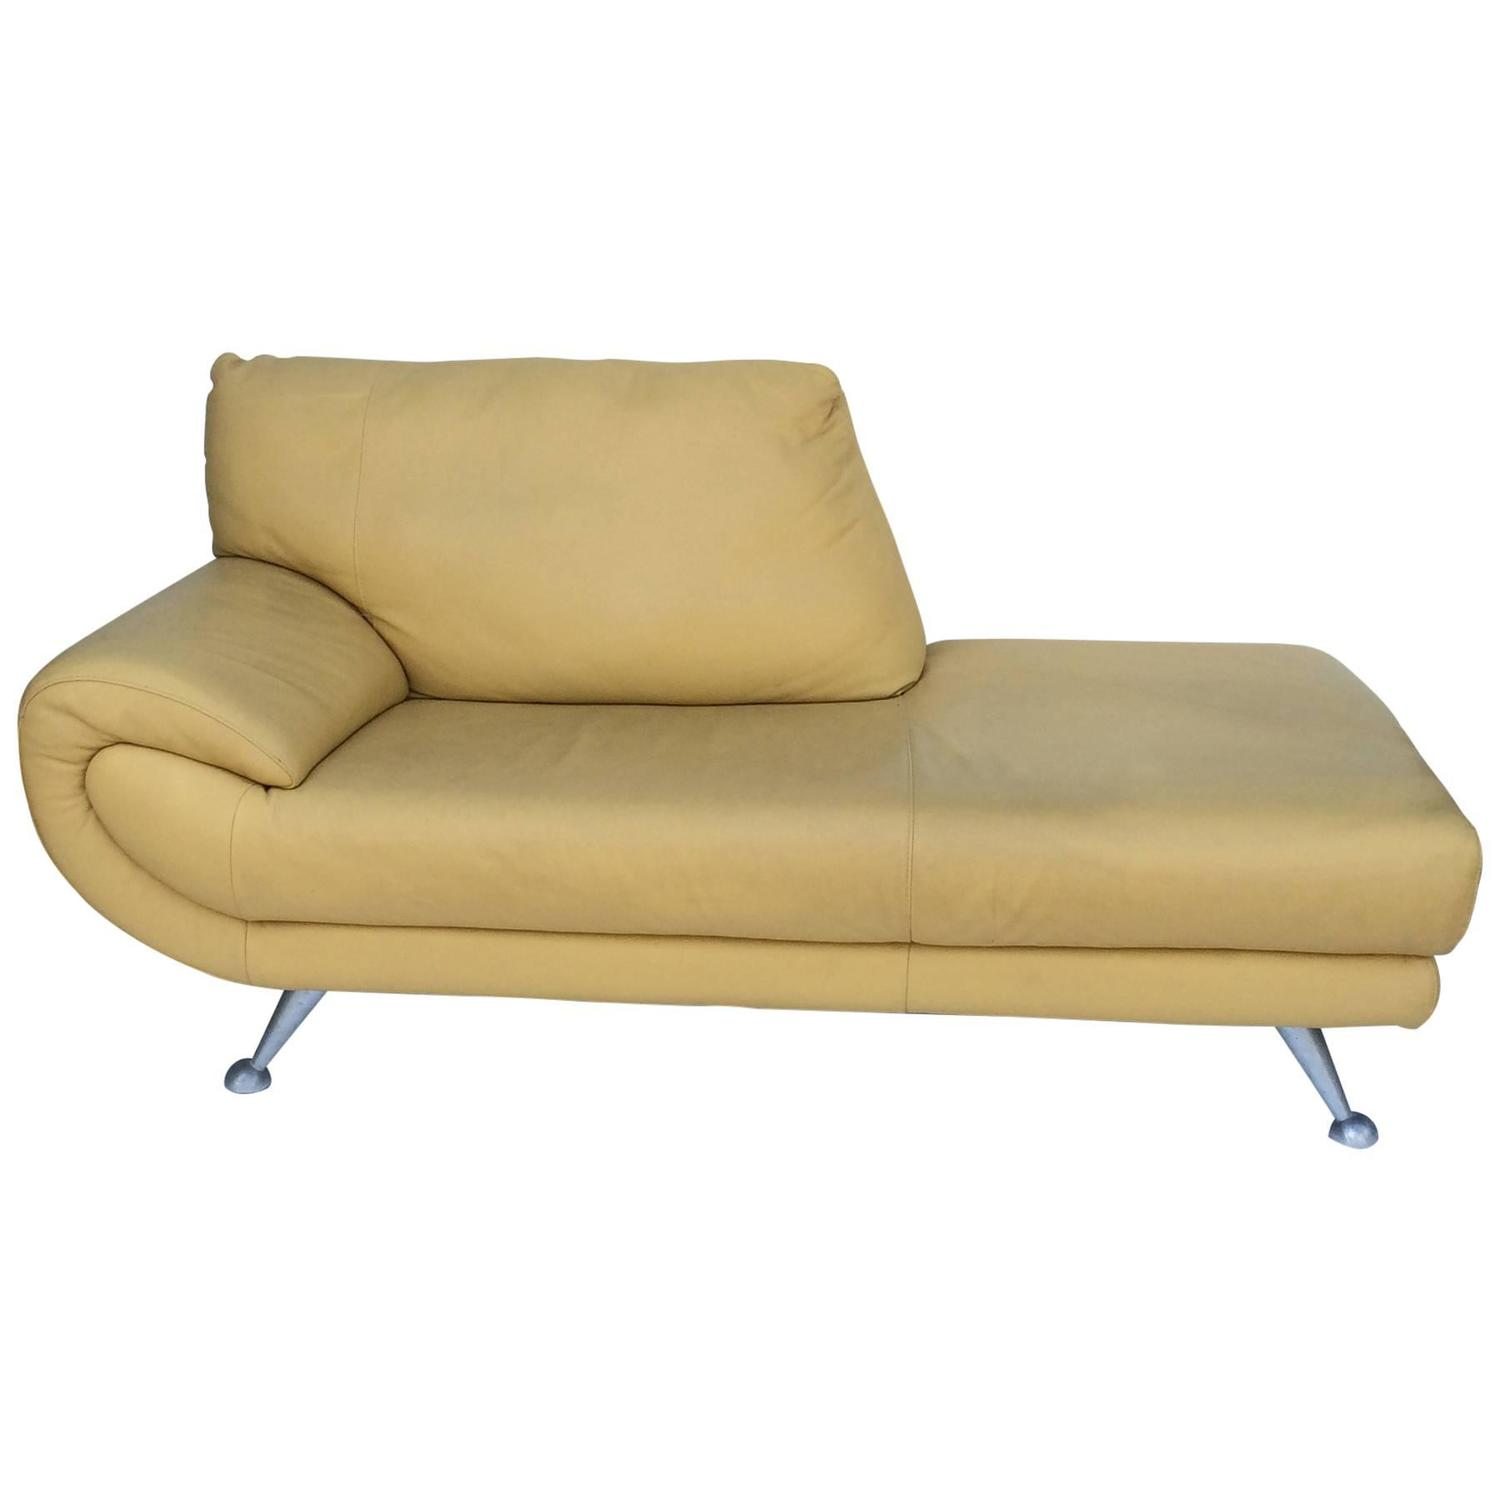 Nicoletti leather chaise lounge for sale at 1stdibs for Chaise leather lounge